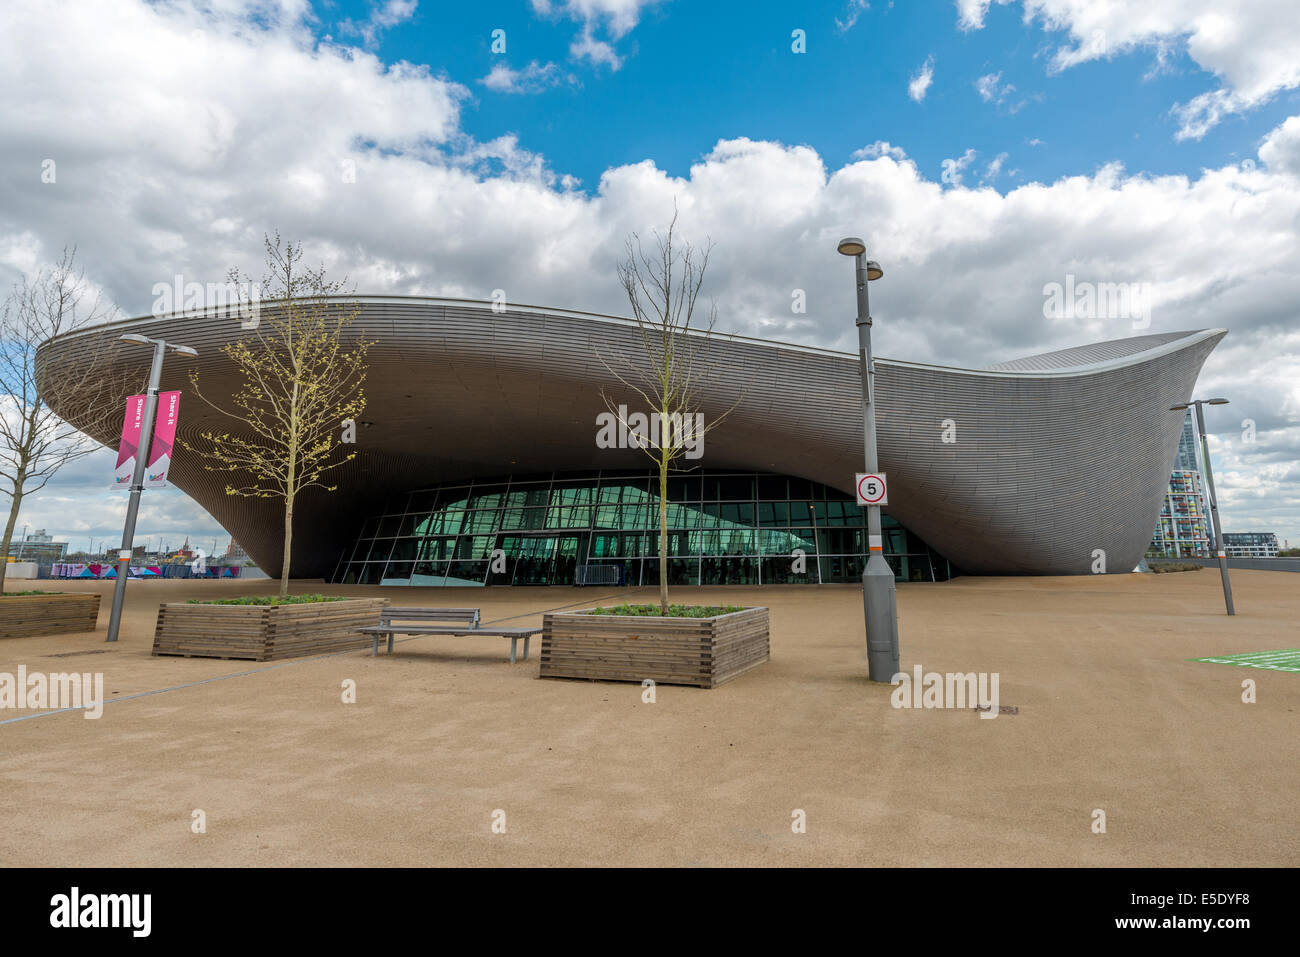 The London Aquatics Centre Is An Indoor Facility With Two Swimming Stock Photo Royalty Free